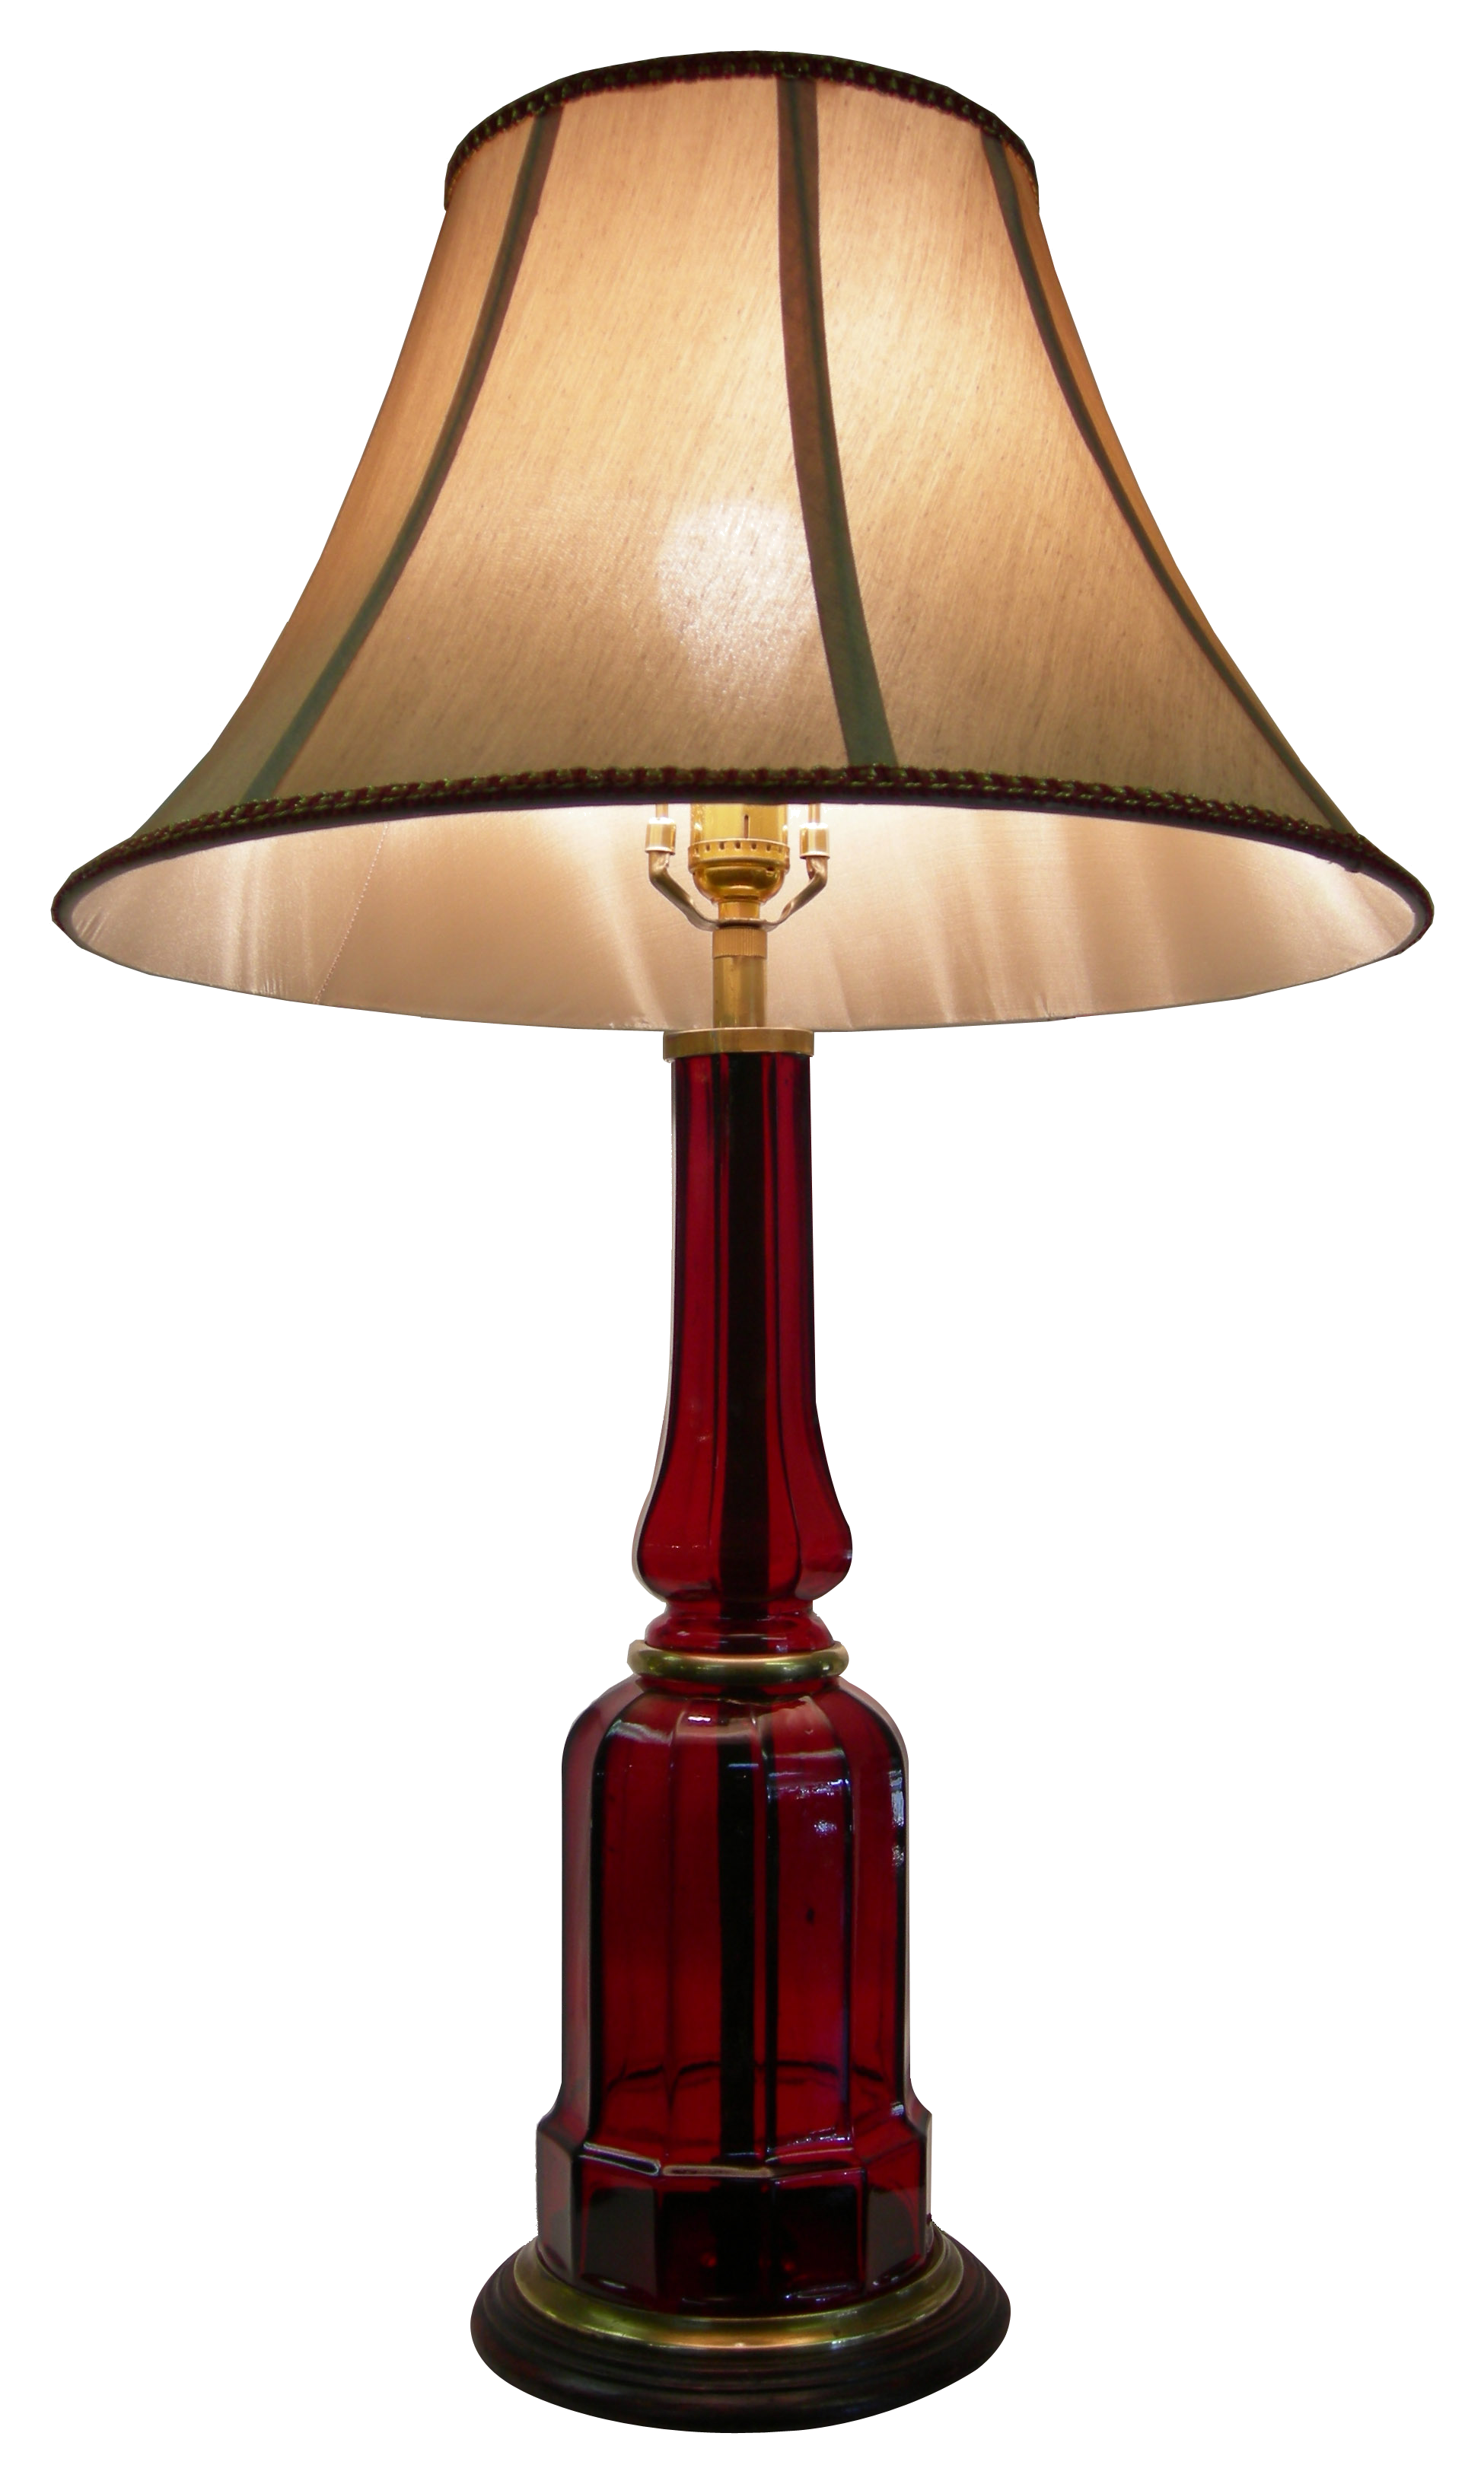 Lamp clipart bed lamp. Best png free icons